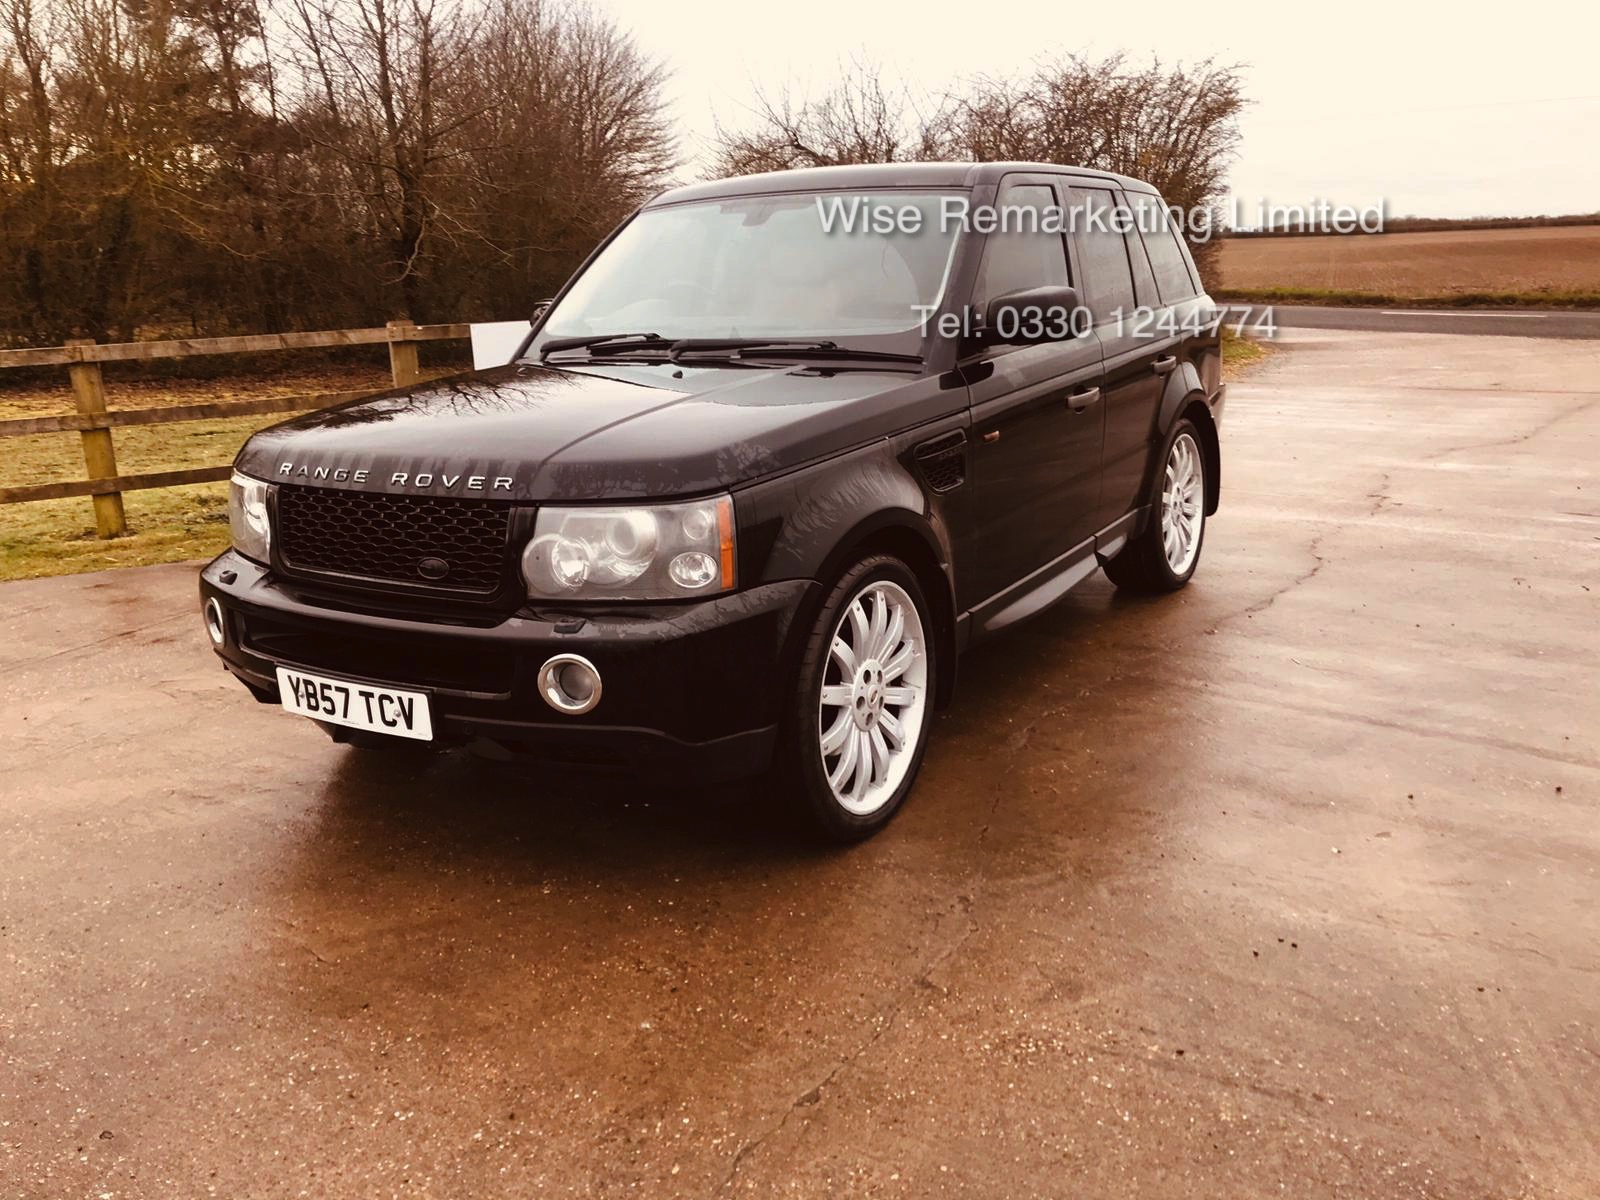 Range Rover Sport 2.7 TDV6 HSE Auto - 2008 Model - Cream Leather - Sat Nav - Heated Seats